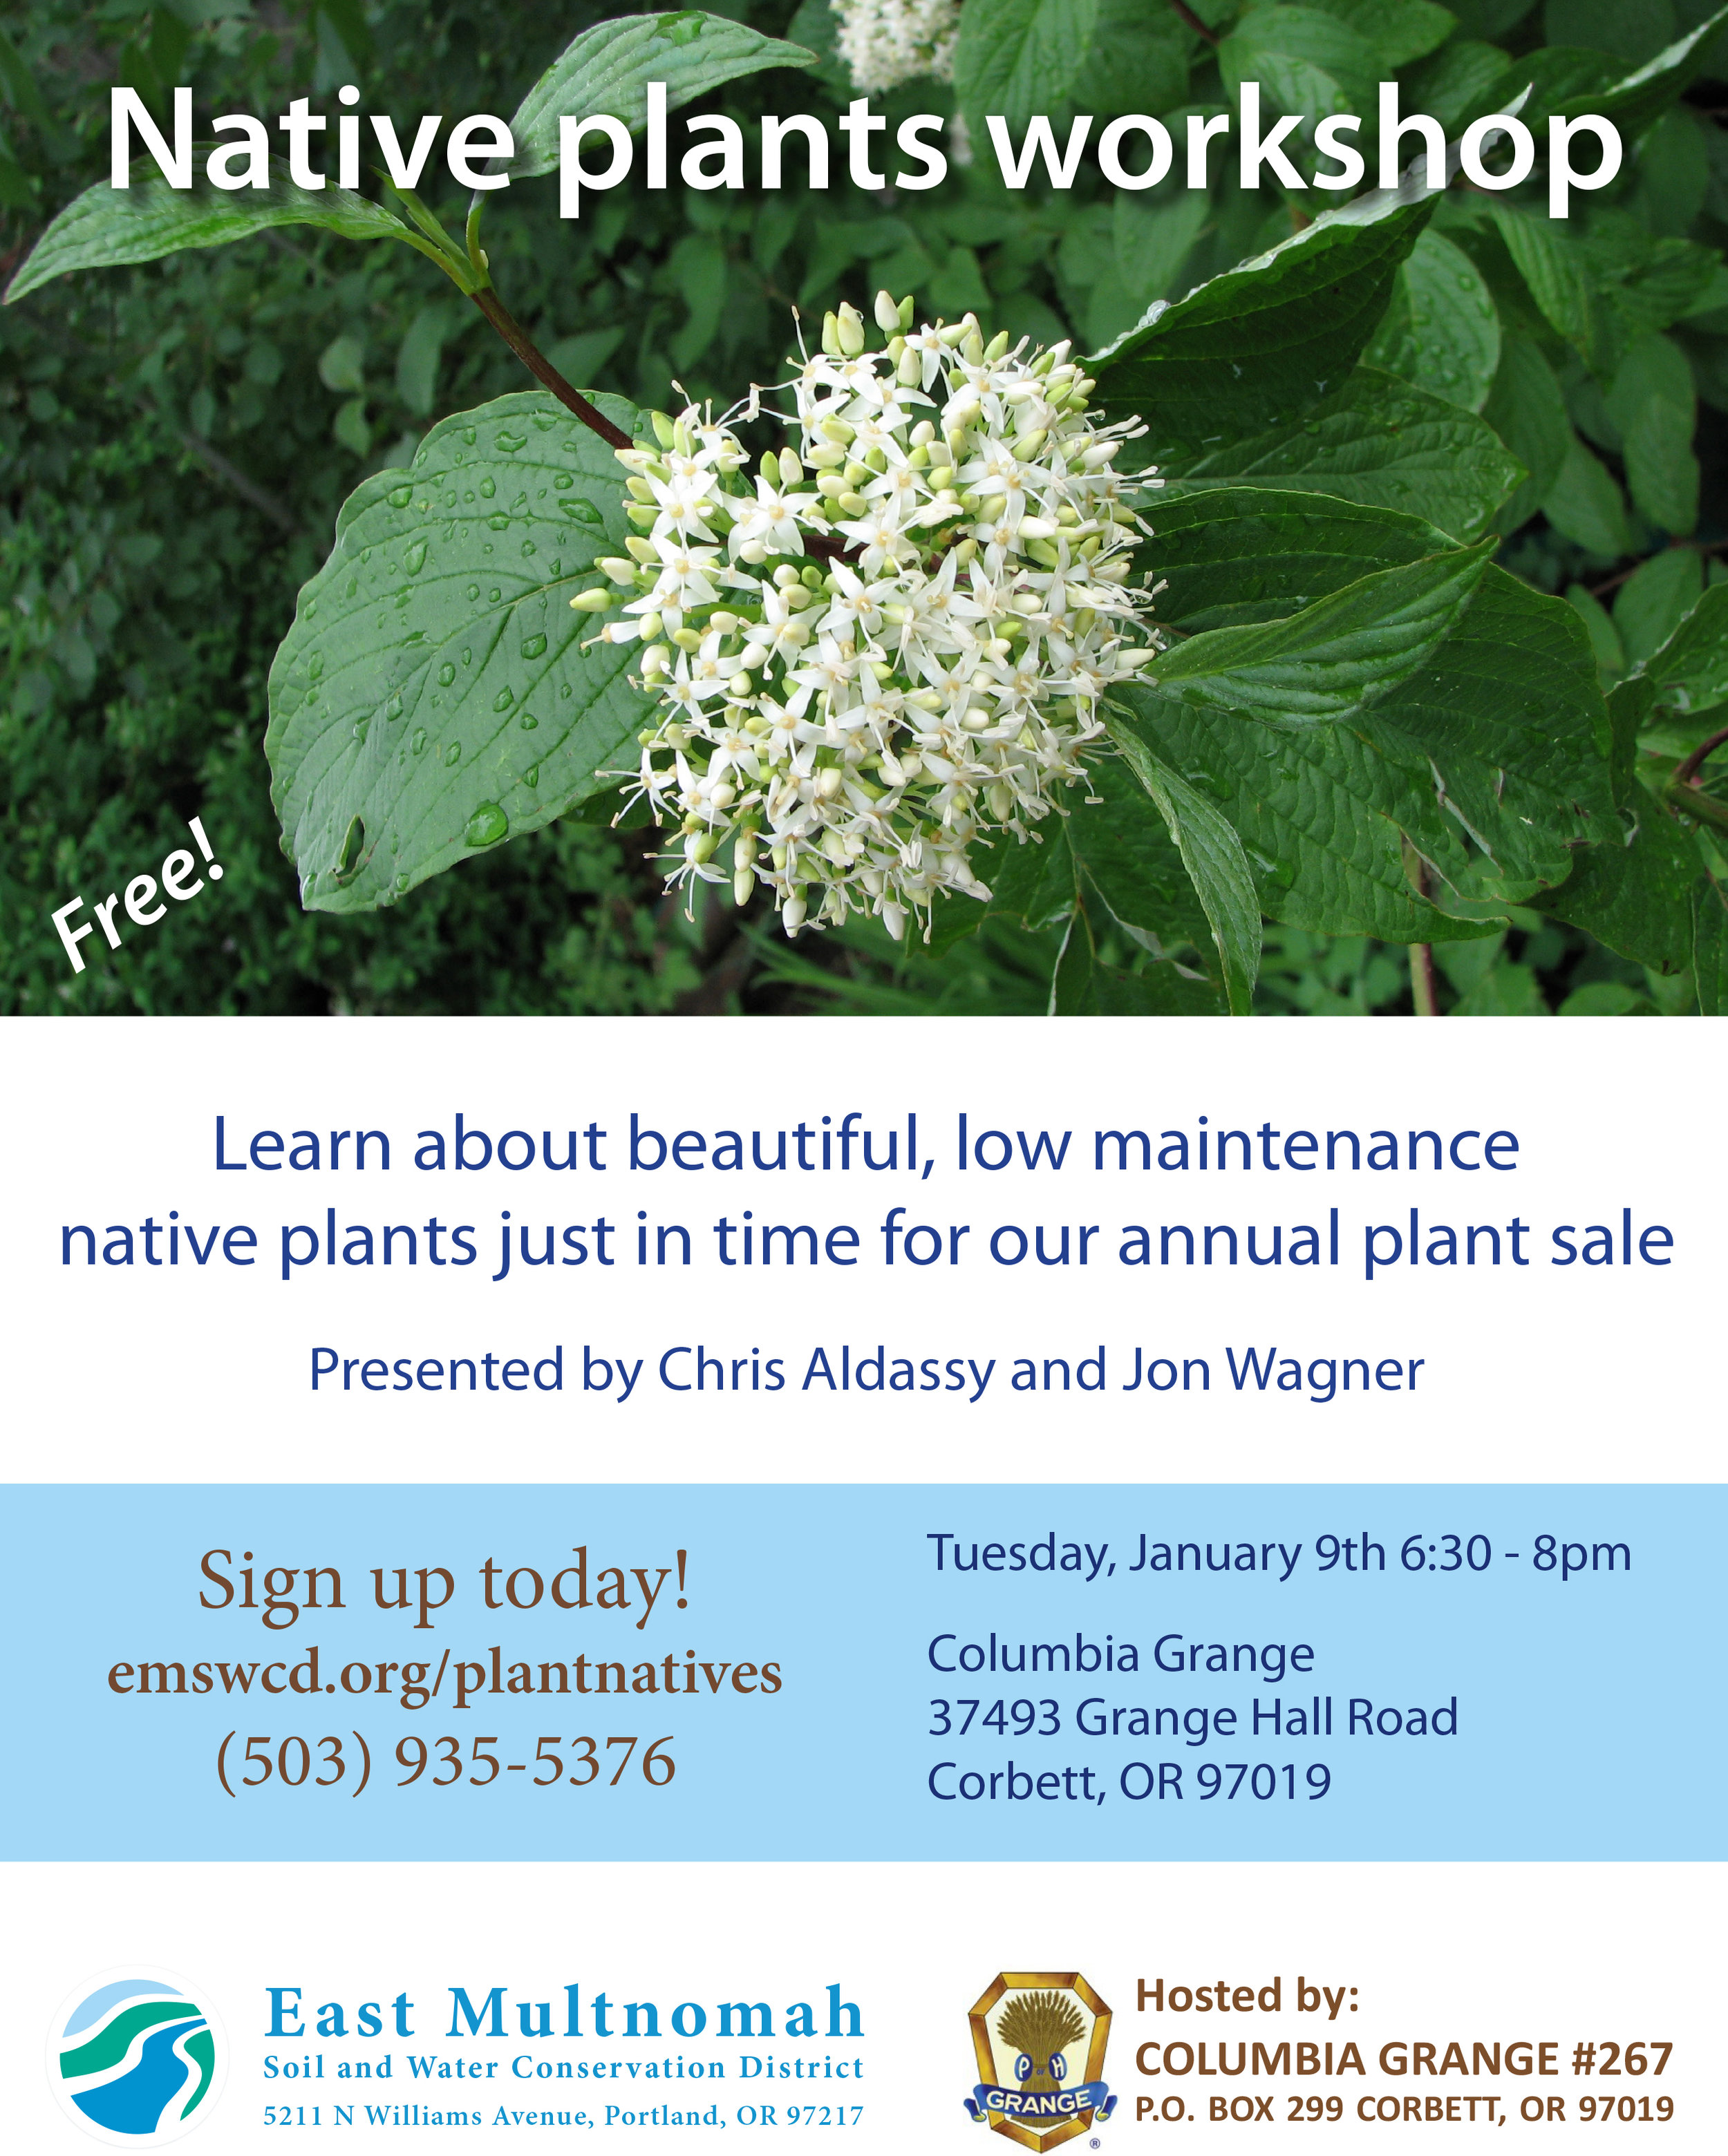 Native plants workshop flier.jpg